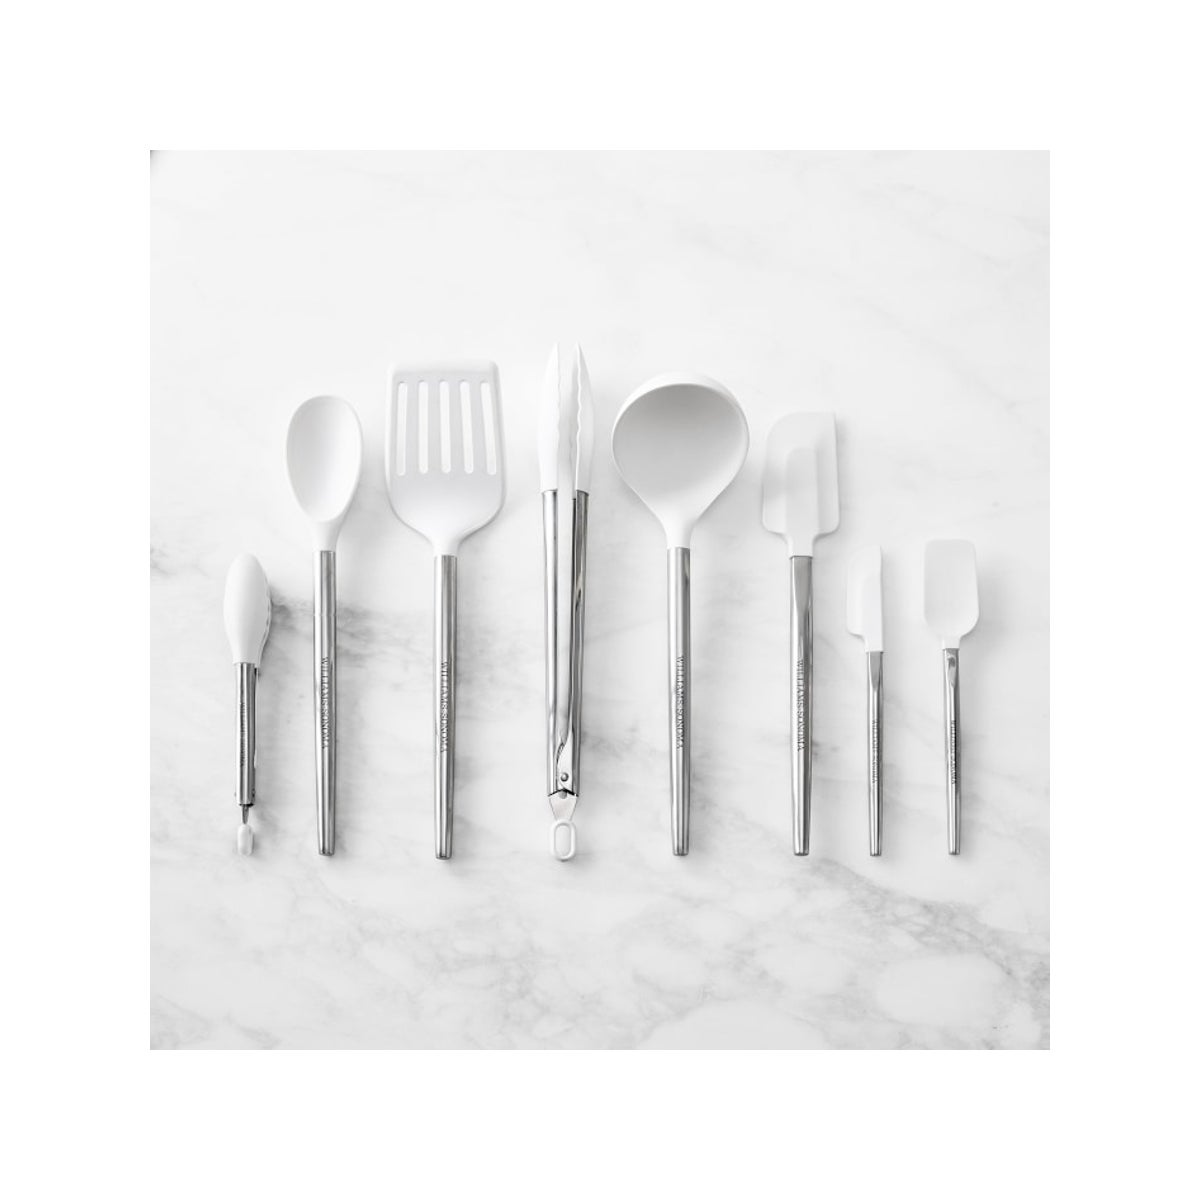 Best Silicone Cooking Utensils Option_ Williams Sonoma Stainless-Steel Silicone Utensils